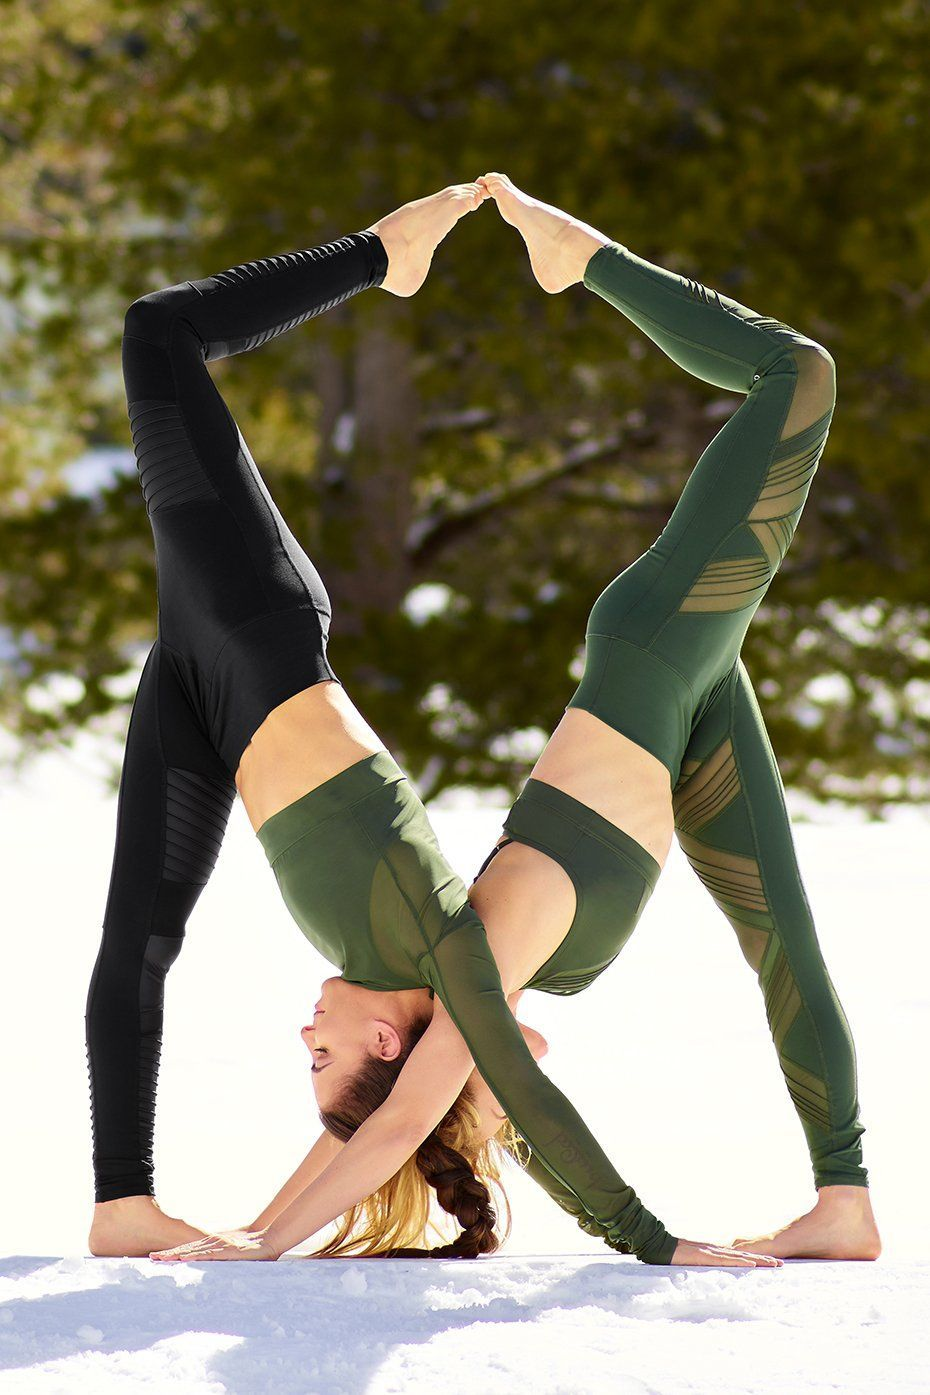 Amuse Long Sleeve Top Amuse Long Sleeve Top Amuse Asana Ashtangayoga Iyengaryoga Long Namaste Part Acro Yoga Poses Partner Yoga Poses Partner Yoga